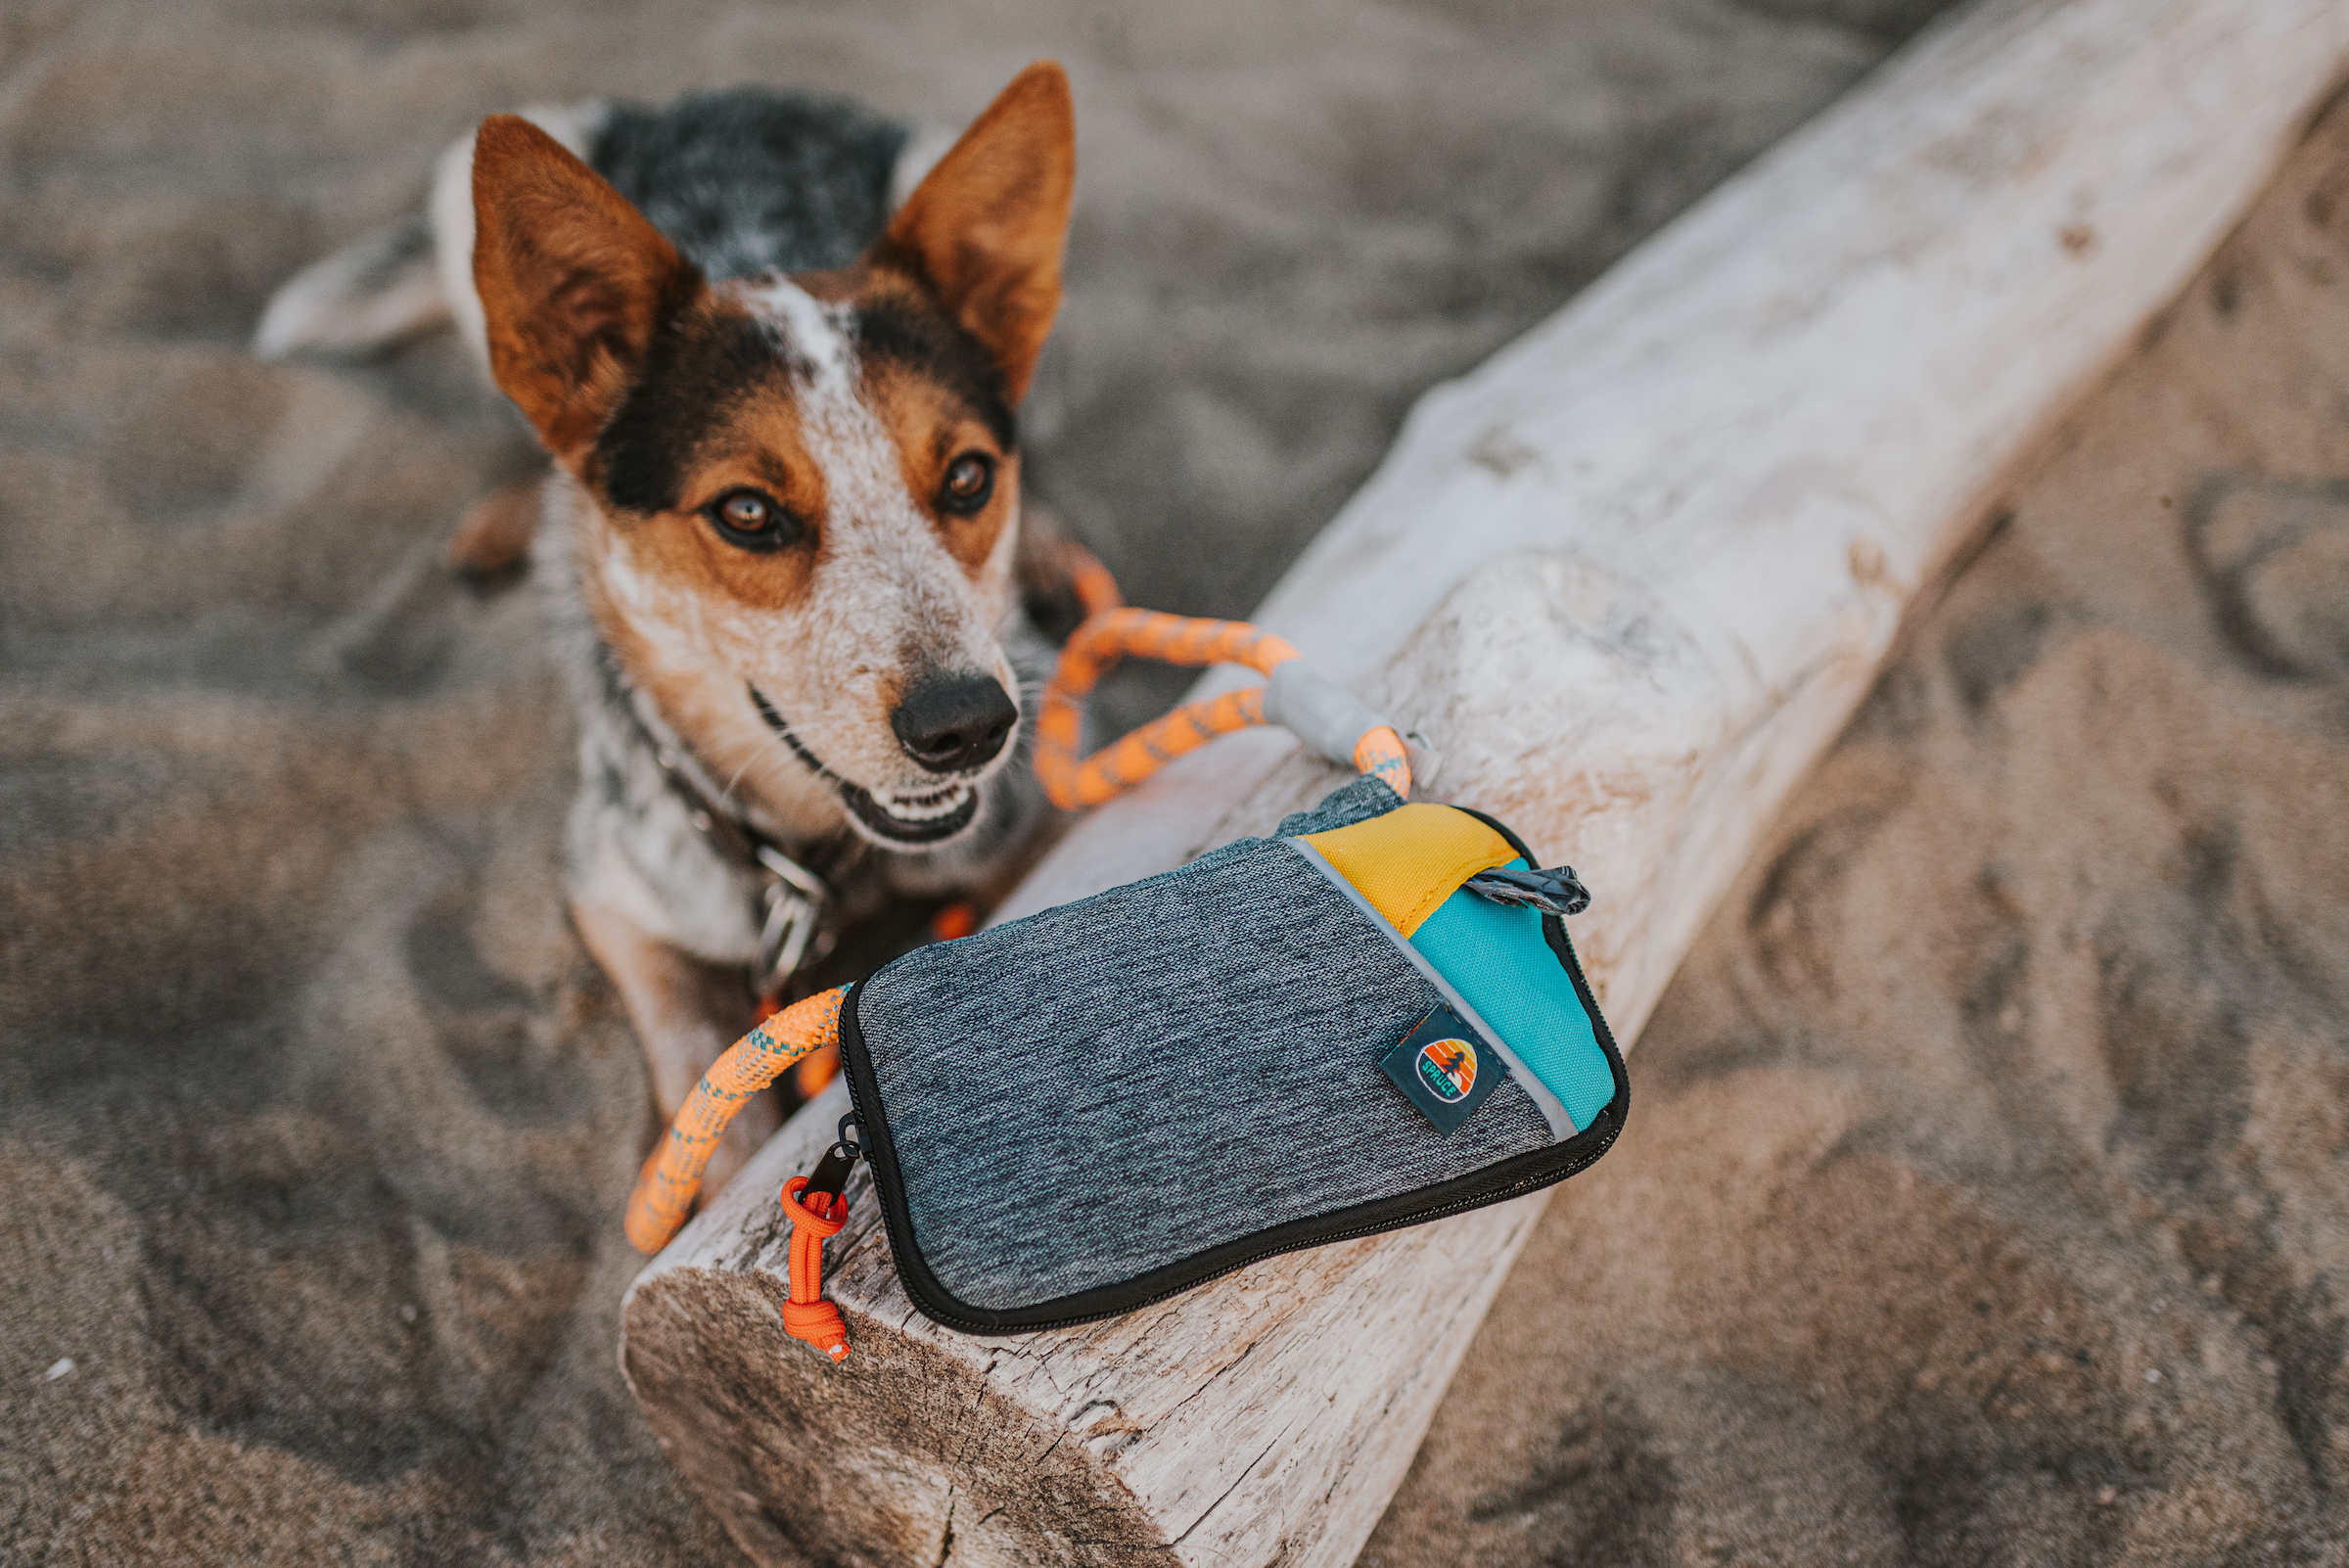 Spruce leash bag gear on log with dog looking at it